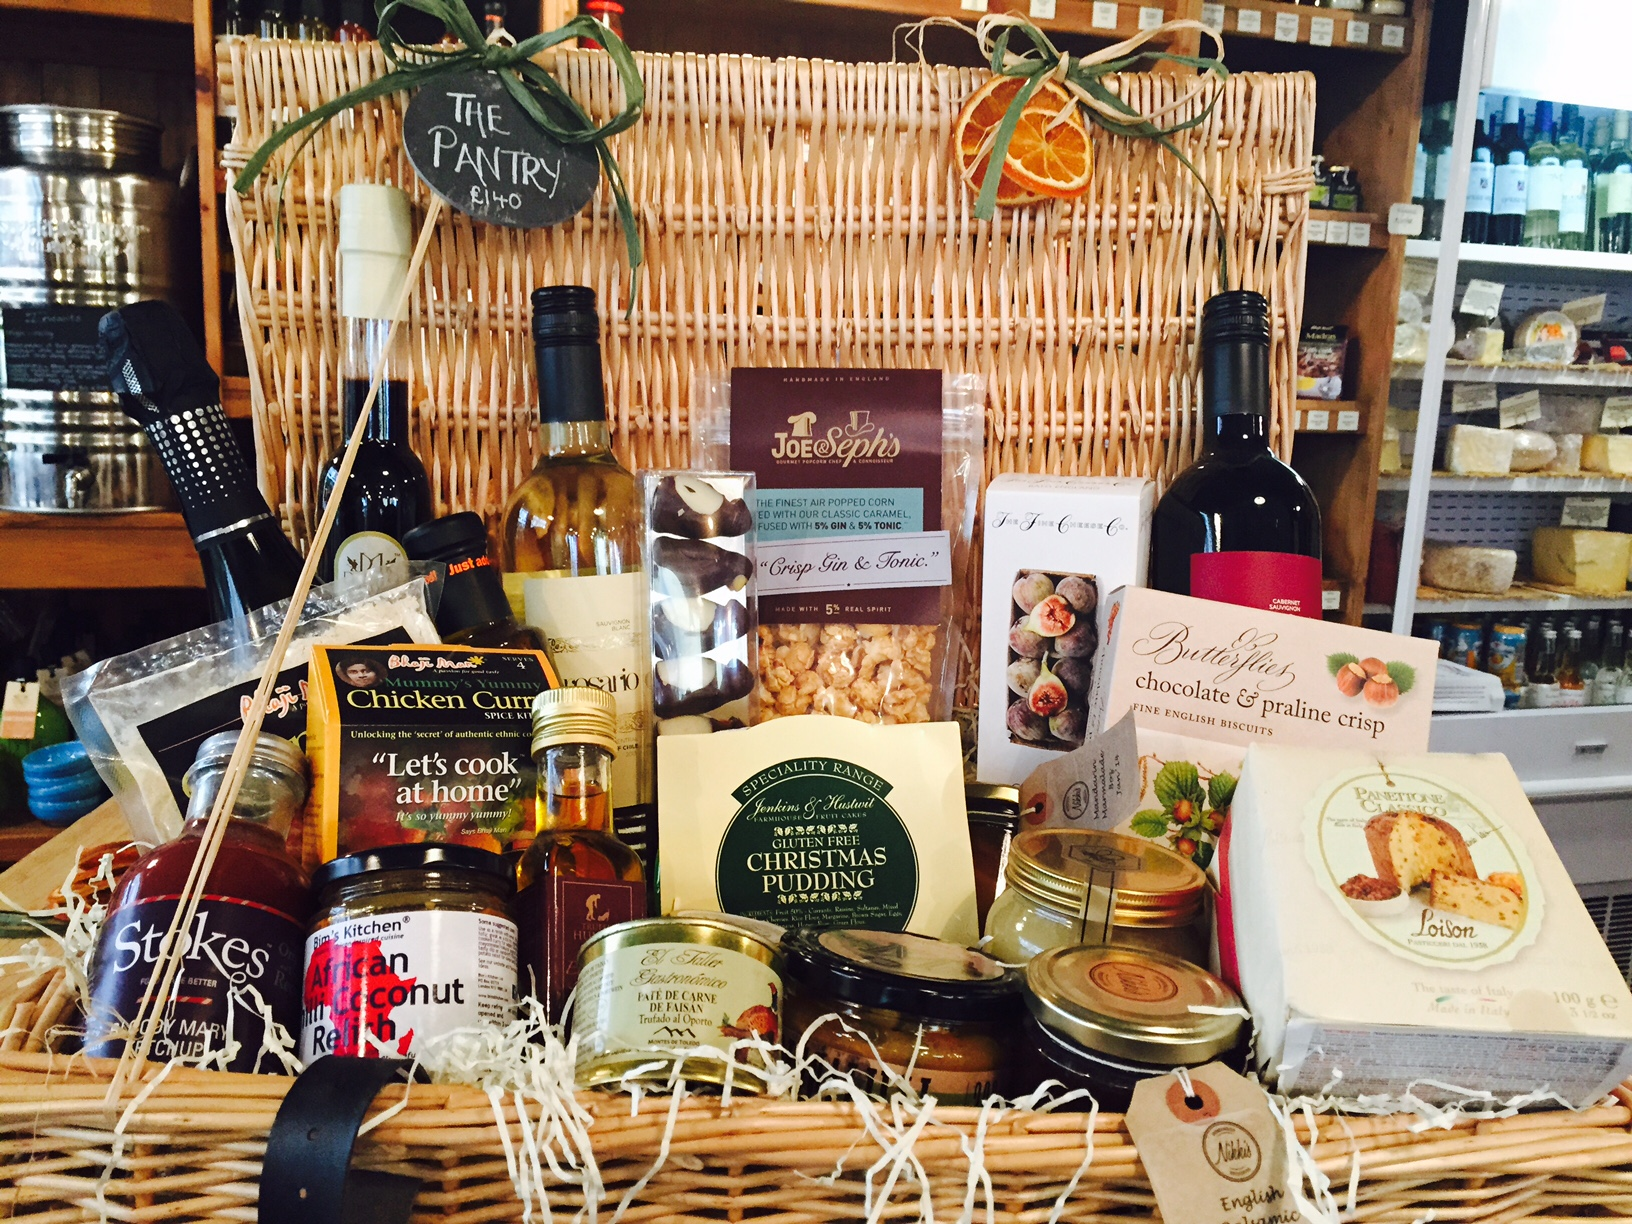 The pantry christmas hampers 2014 the pantry newmarket order now by calling nikki or anne marie on 01638 661181 or emailing us at pantrynewmarketgmail negle Gallery